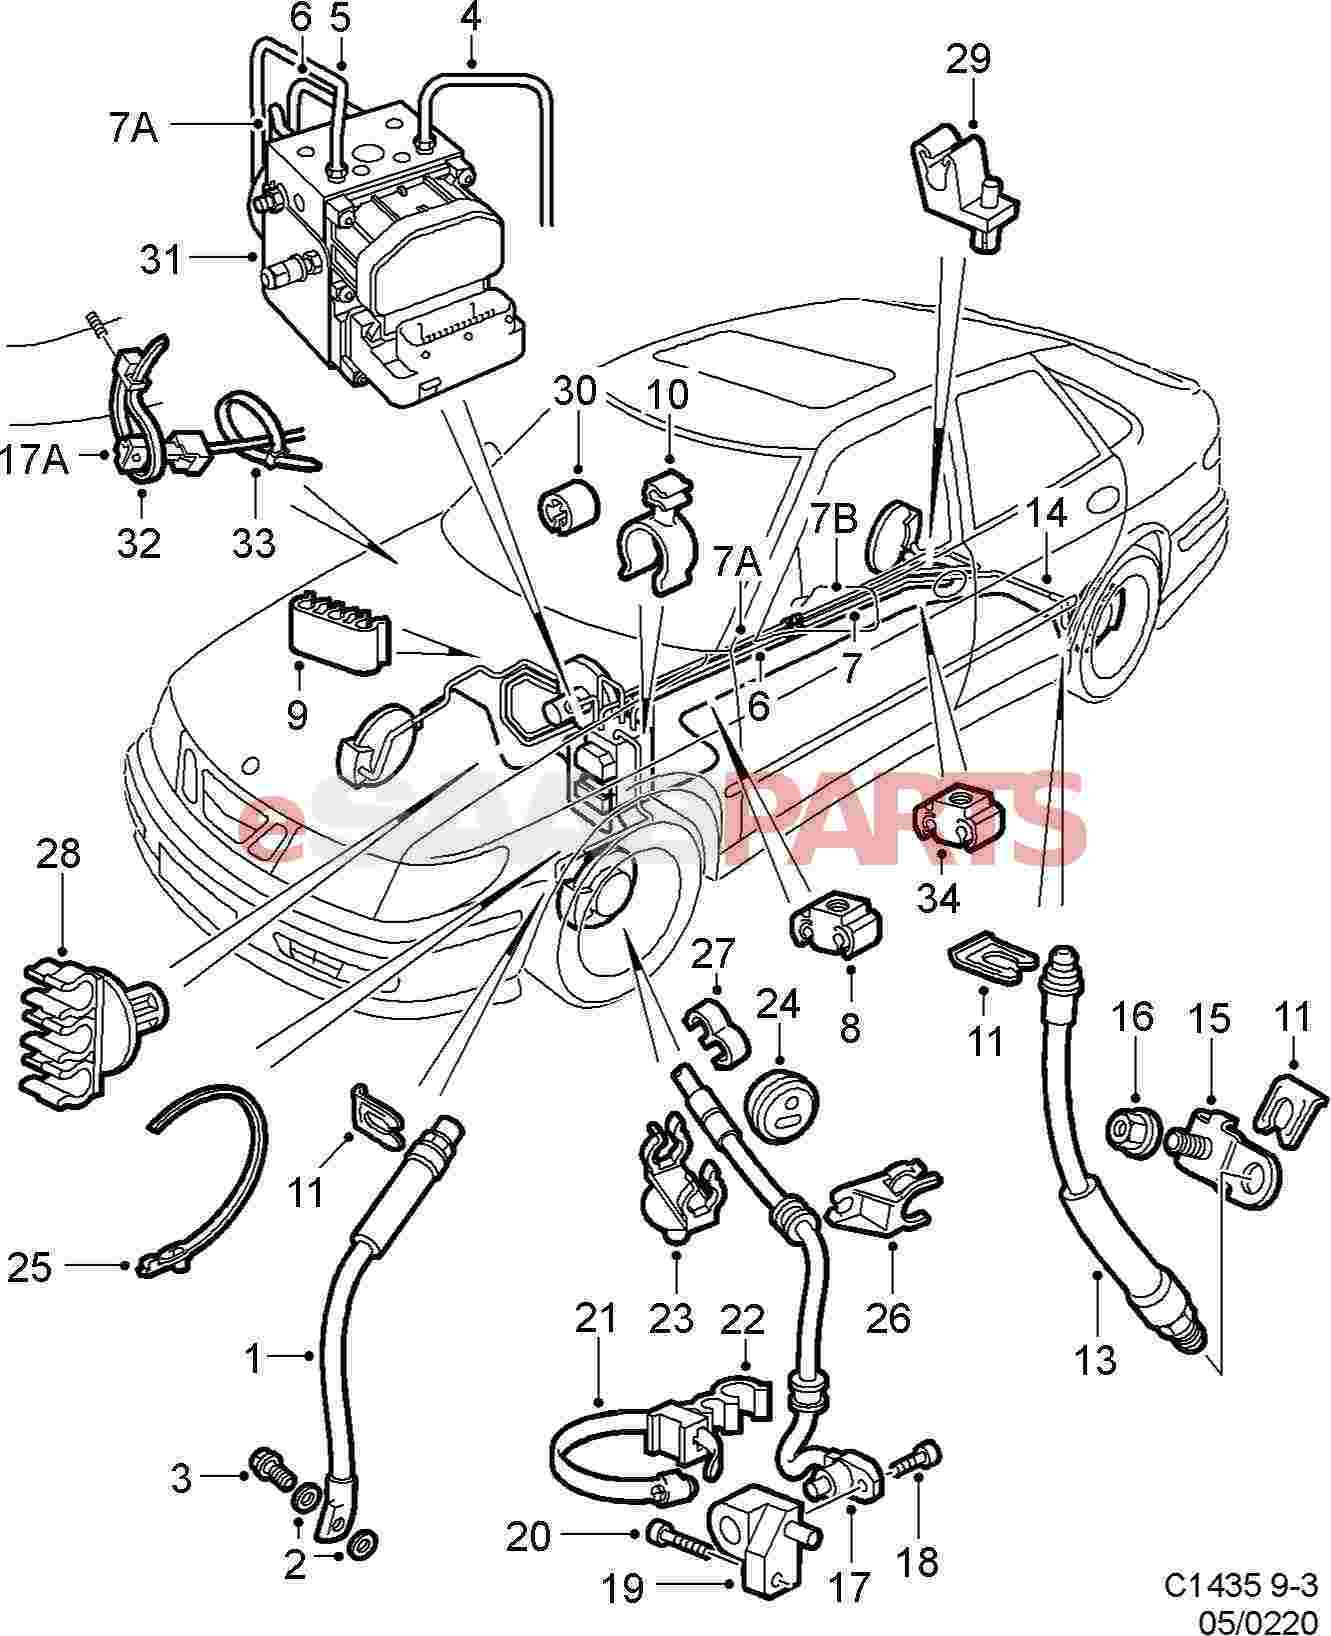 saab tie strap genuine parts from esaabparts com audio wiring diagram get free image about